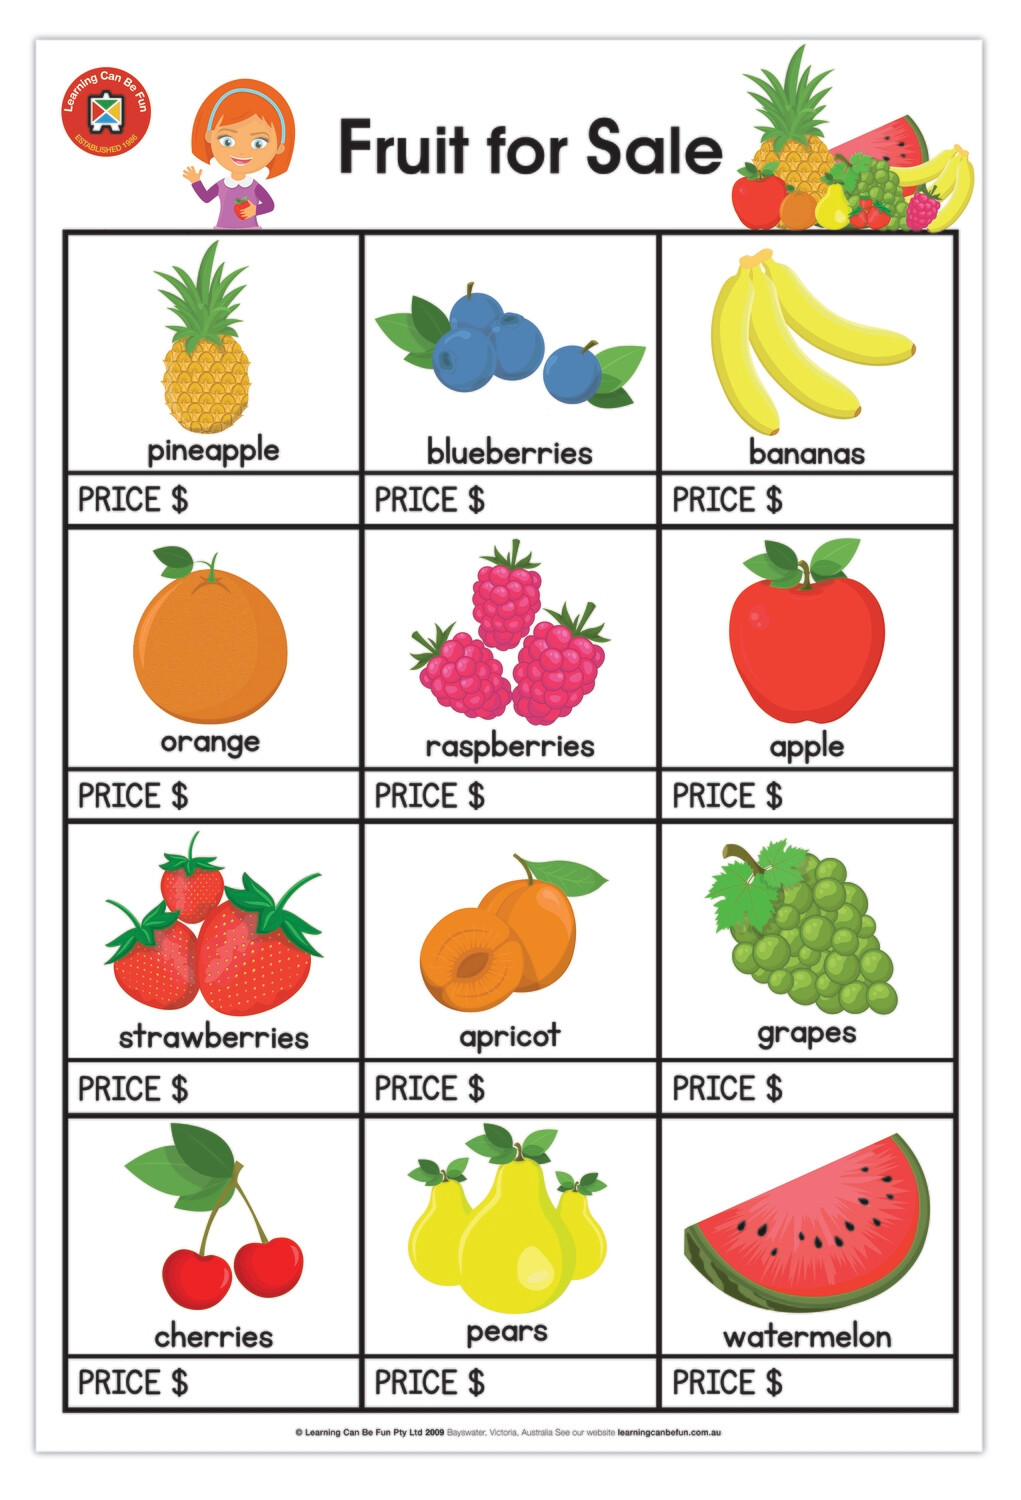 Fruit for Sale Poster